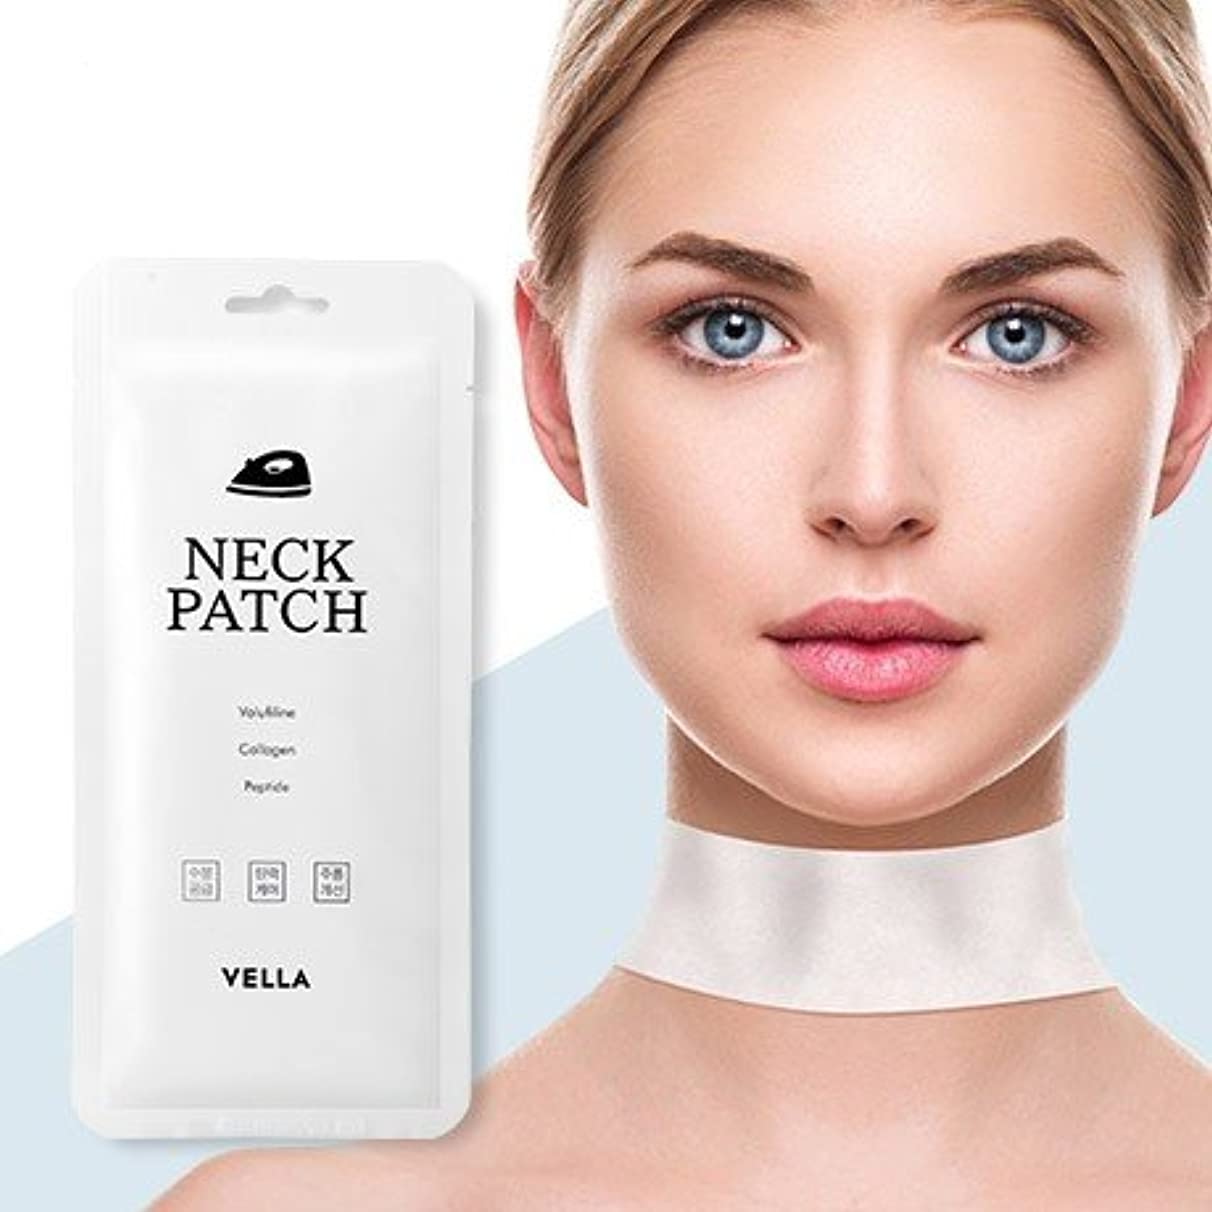 友情ジョガー協力するVella Neck Patch 5Pcs/Neck Wrinkle Care/Korea Cosmetics